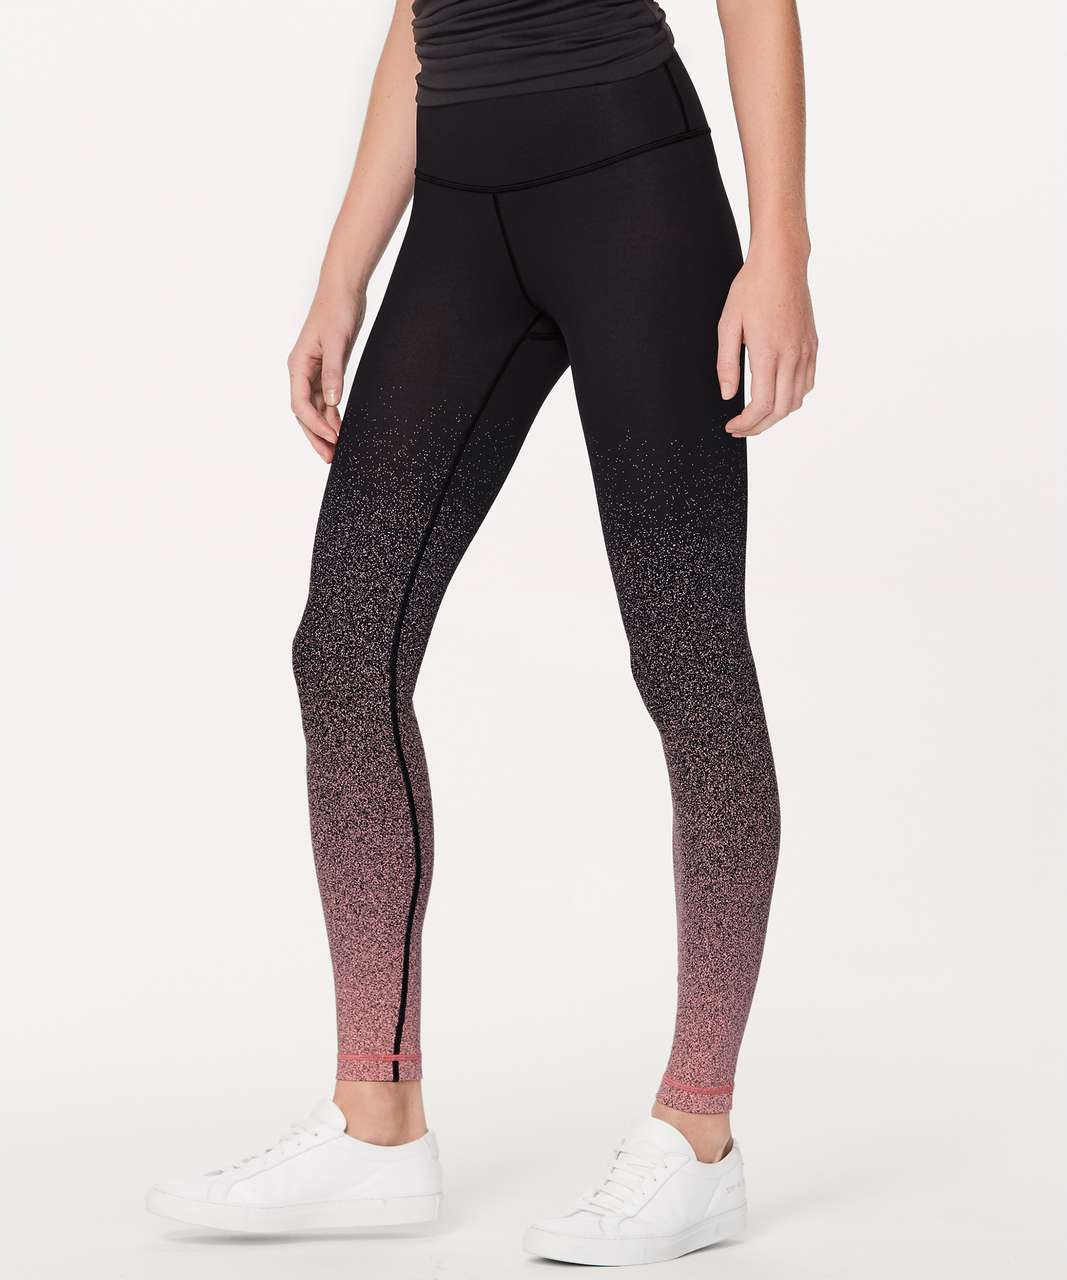 "Lululemon Wunder Under Hi-Rise Tight (Ombre Speckle) 28"" - Ombre Speckle Stop Jacquard Luon Black Yum Yum Pink"